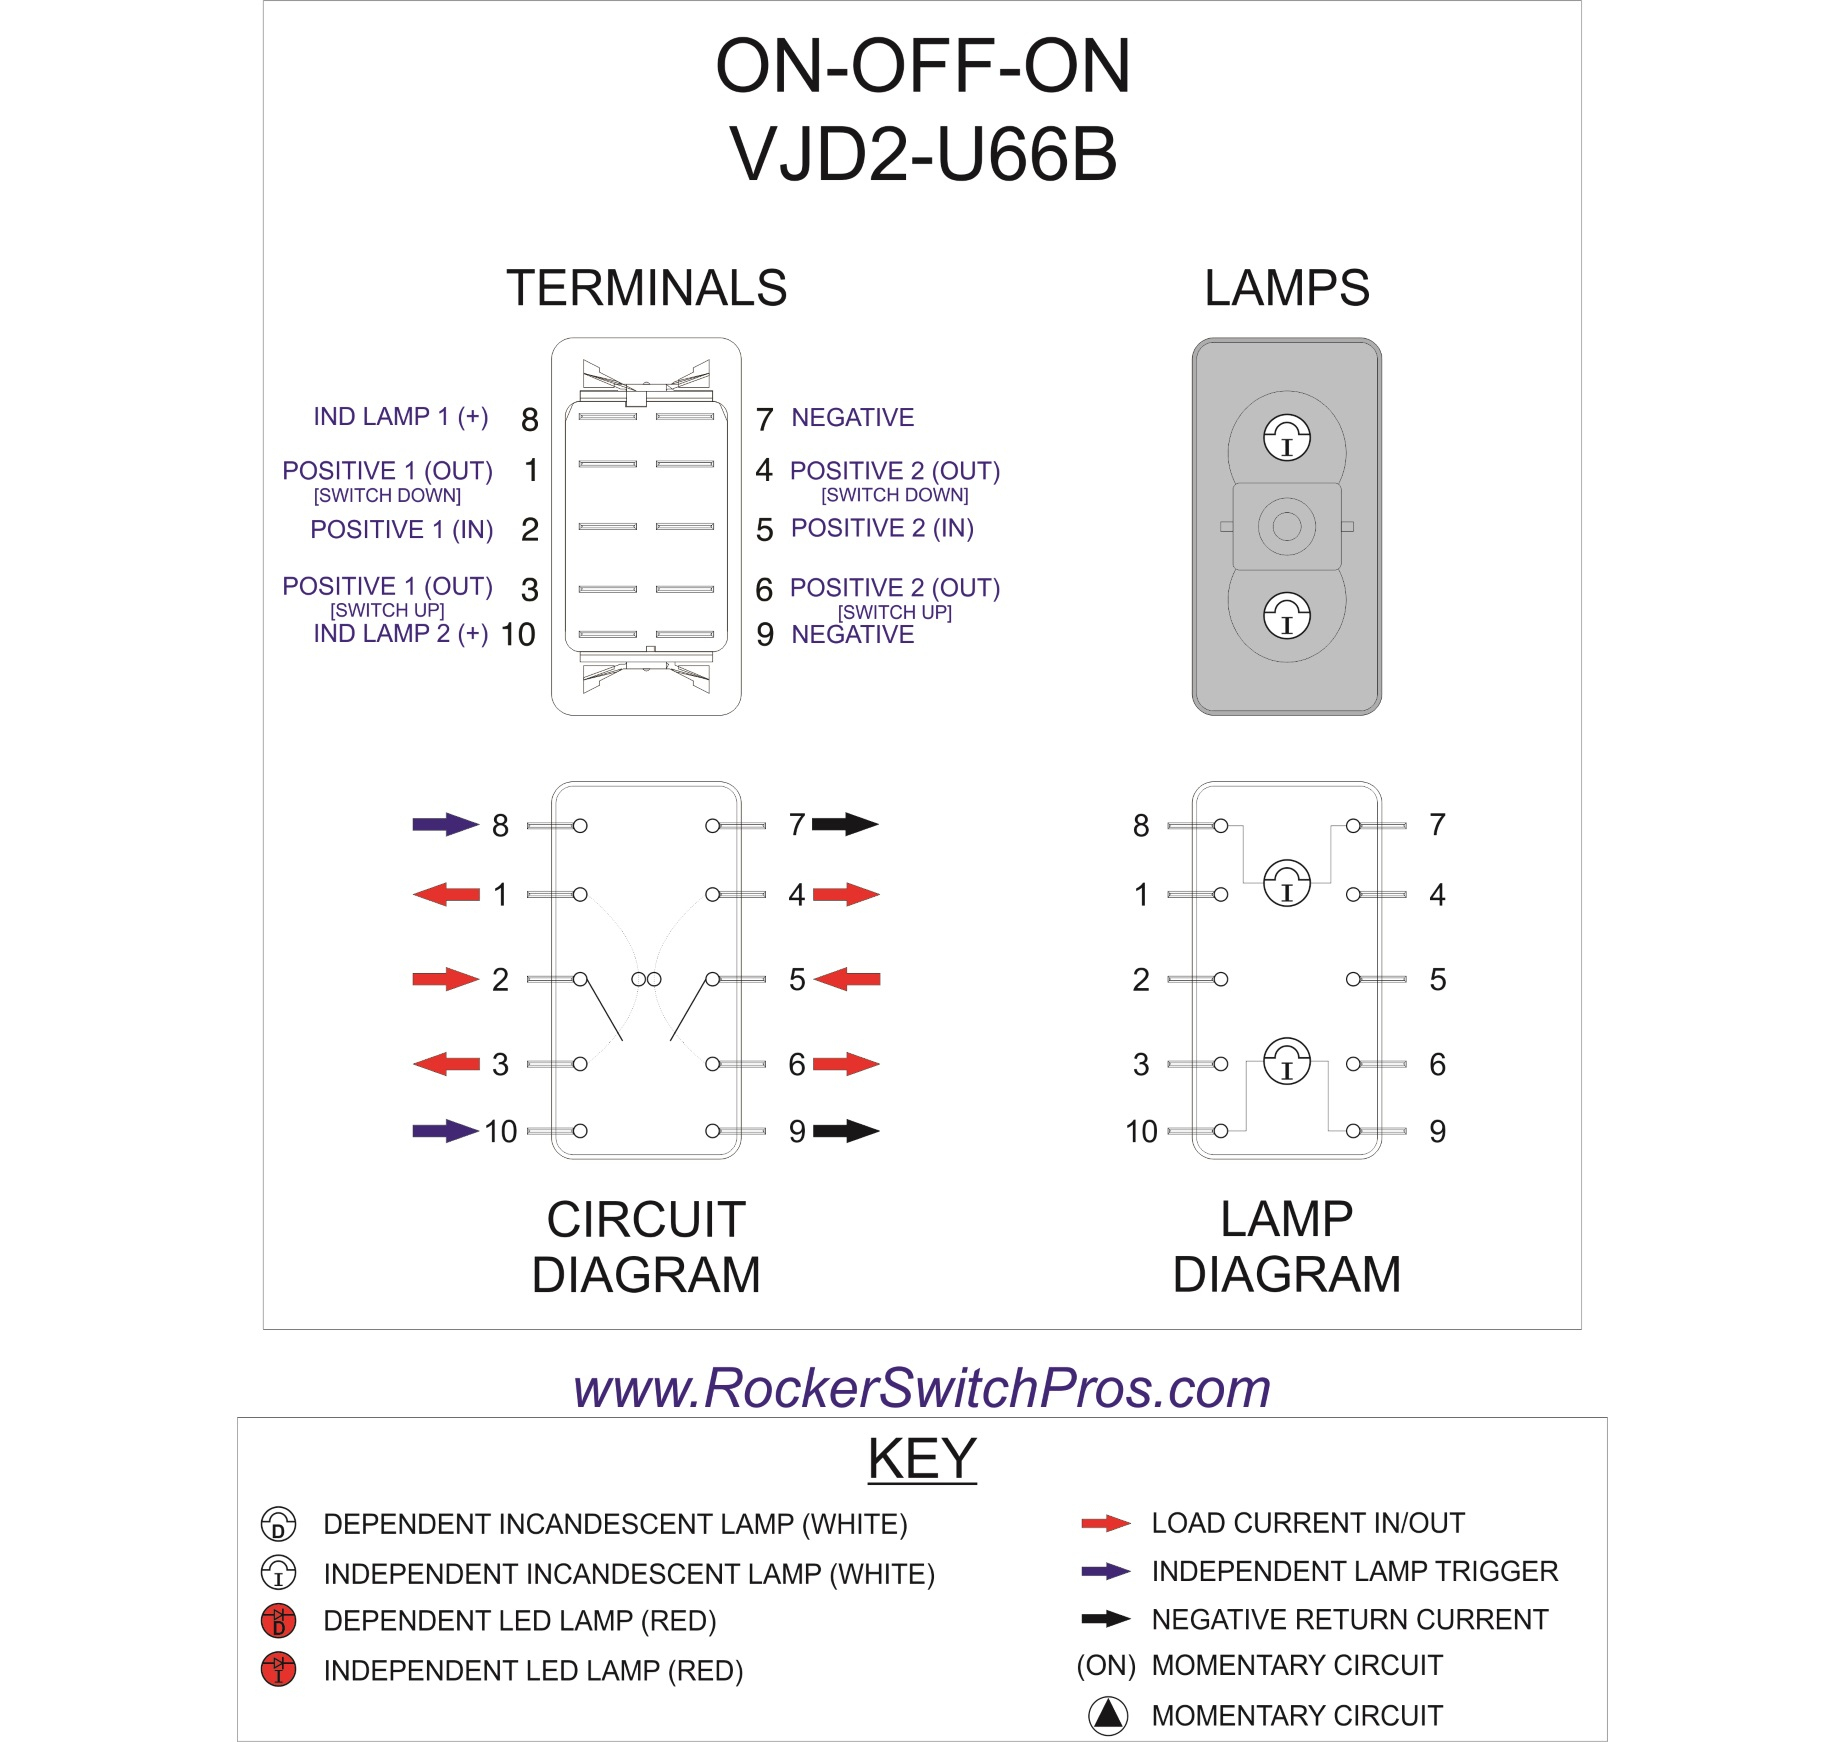 Dpdt Rocker Switch | On-Off-On | 2 Ind Lamps - Carling Rocker Switch Wiring Diagram